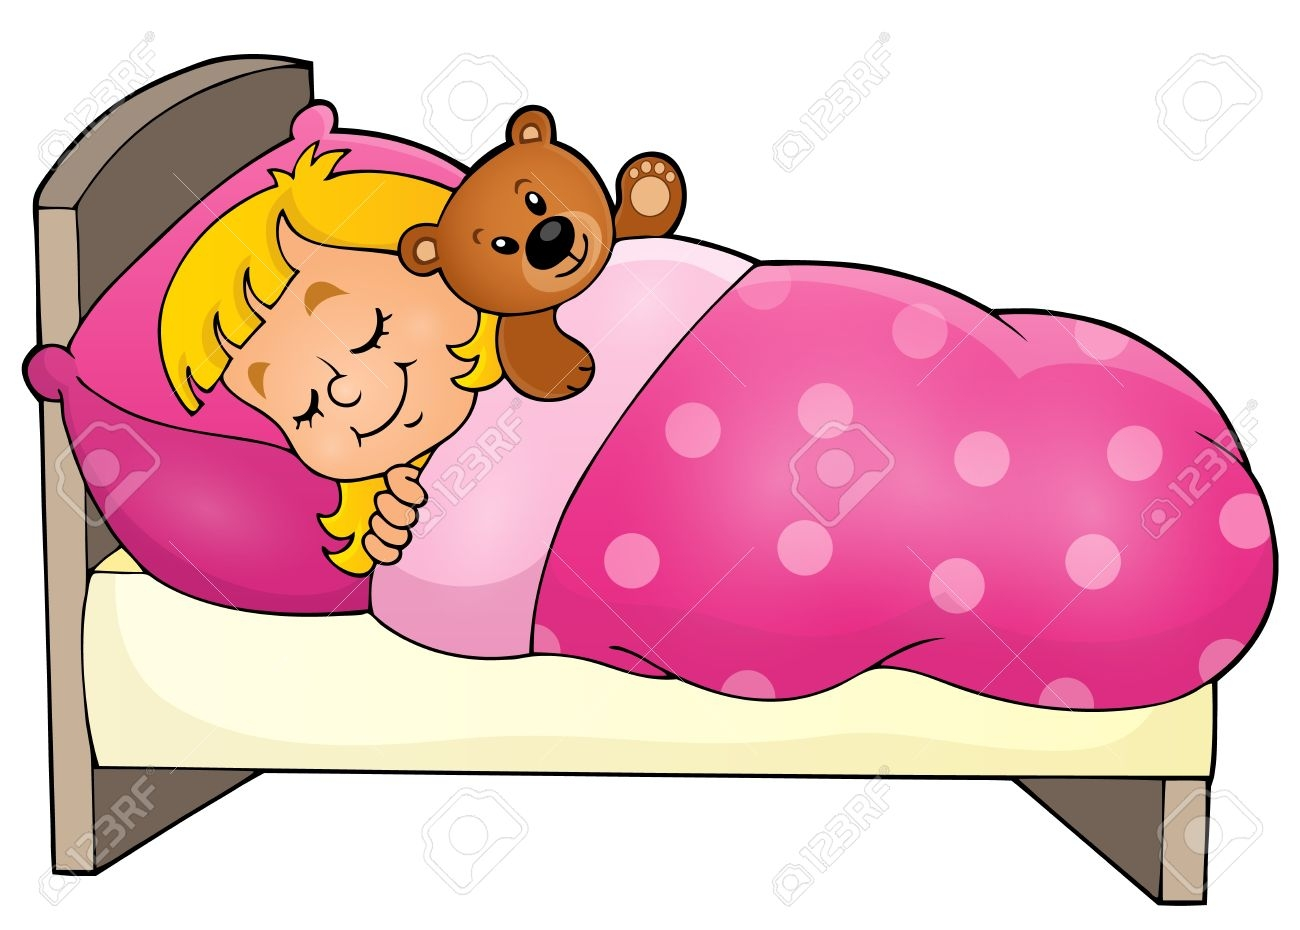 Sleep clipart Beautiful Sleeping Child Theme Image Royalty.